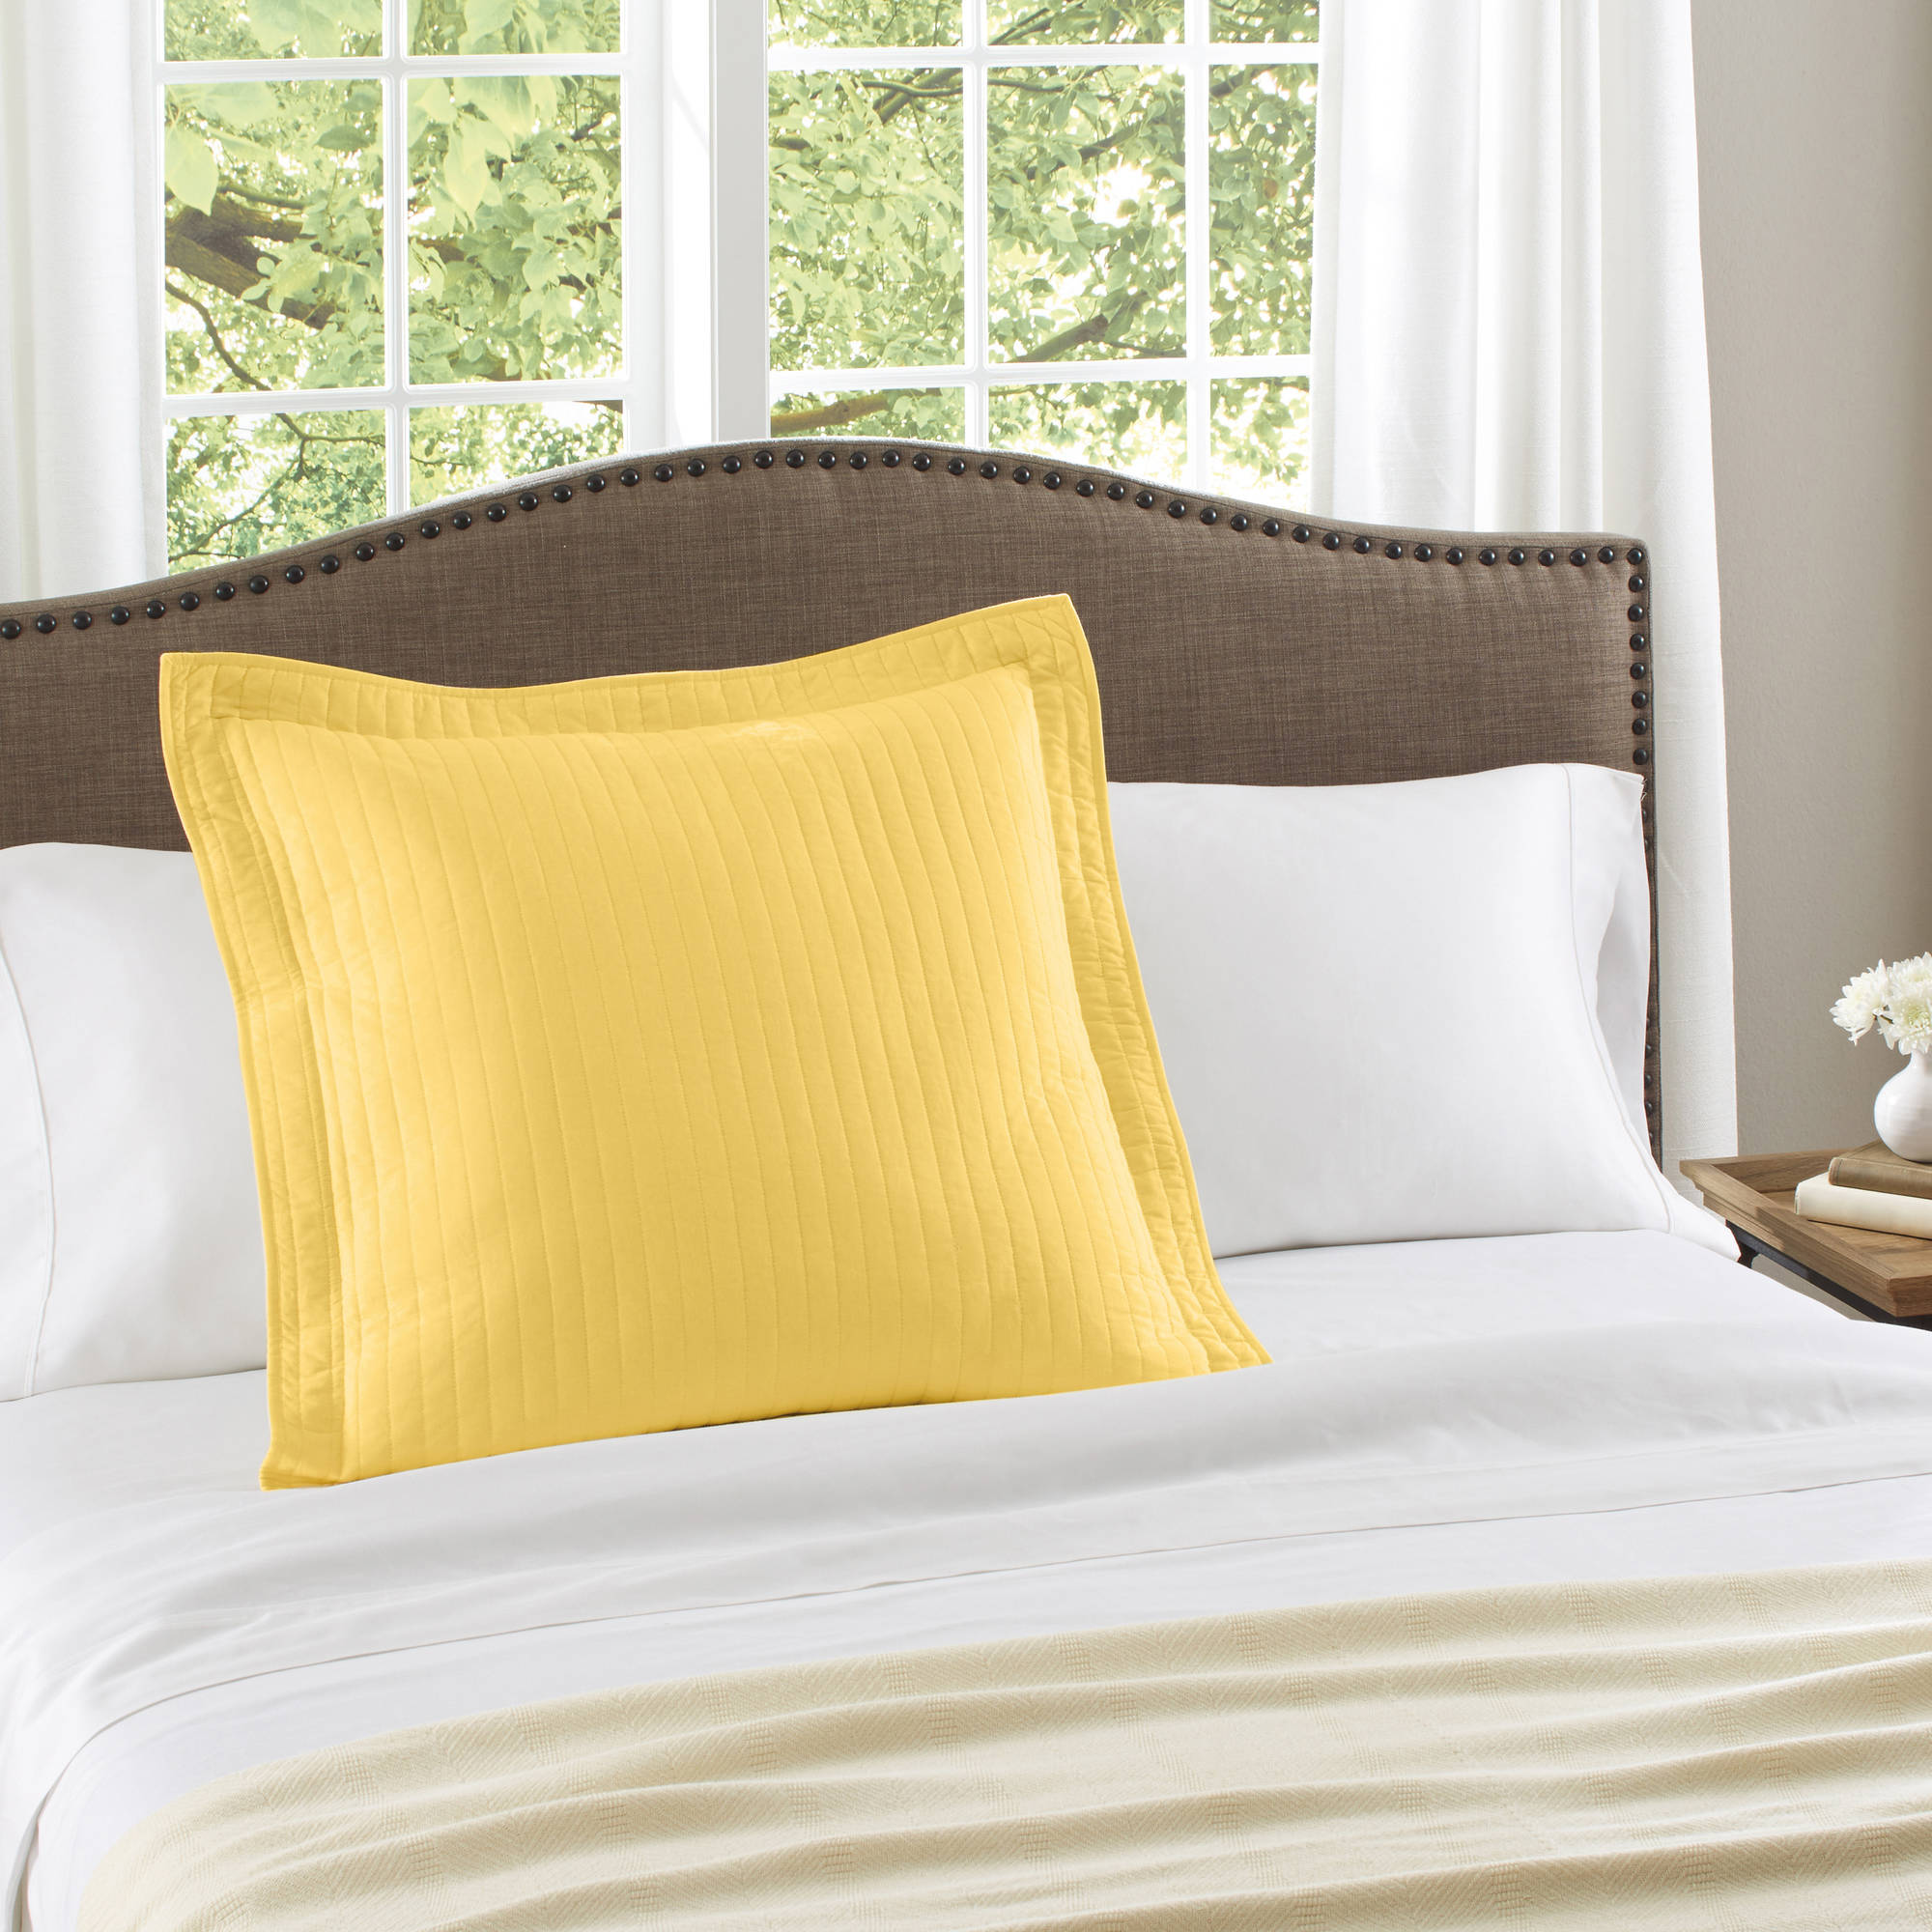 Better Homes and Gardens Solid Cotton Euro Sham  Walmartcom